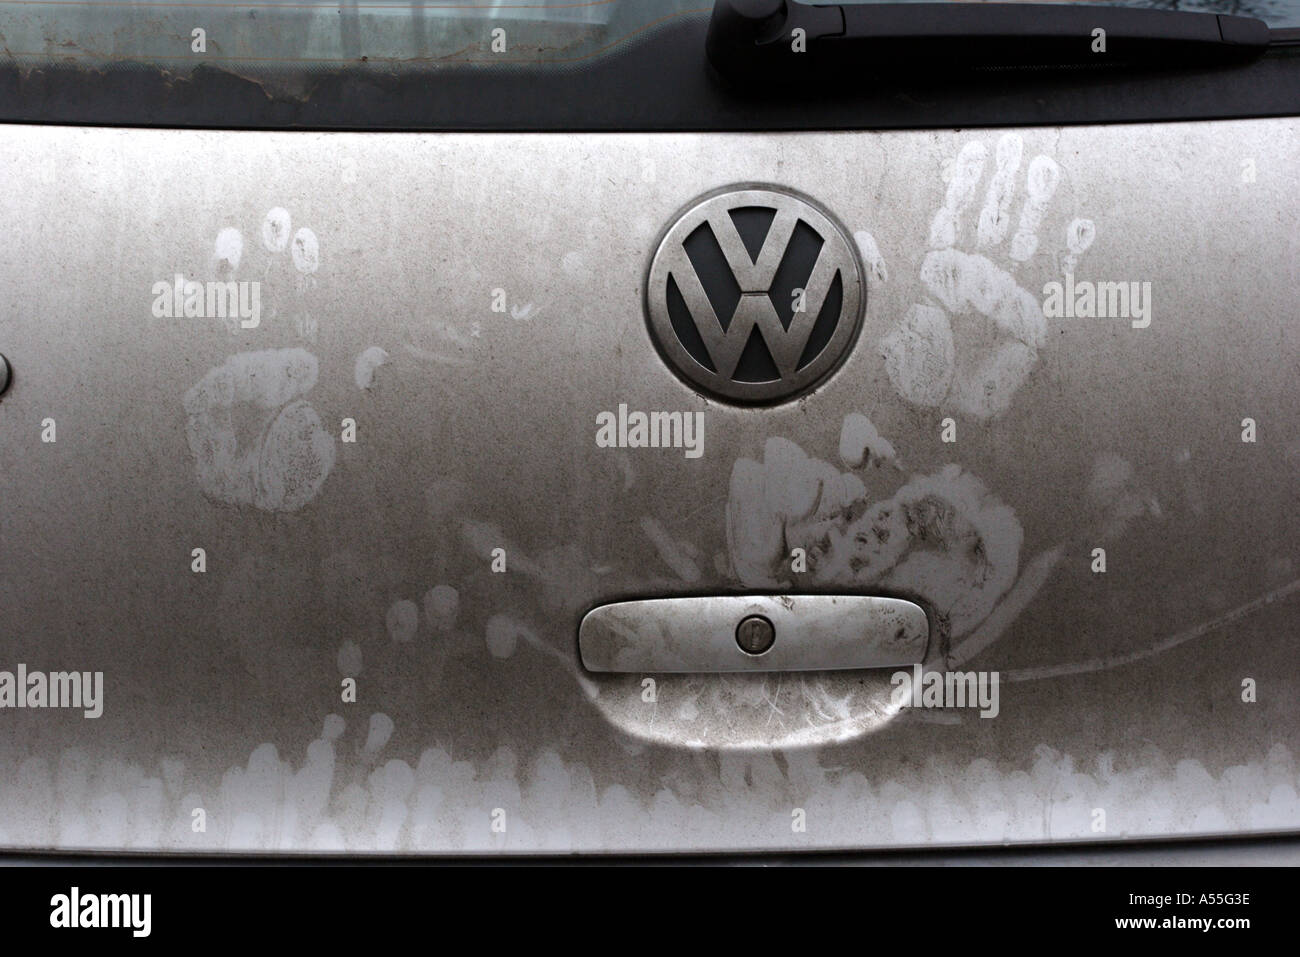 Childu0027s hand prints on tailgate of dirty car & Childu0027s hand prints on tailgate of dirty car Stock Photo: 3656765 ...